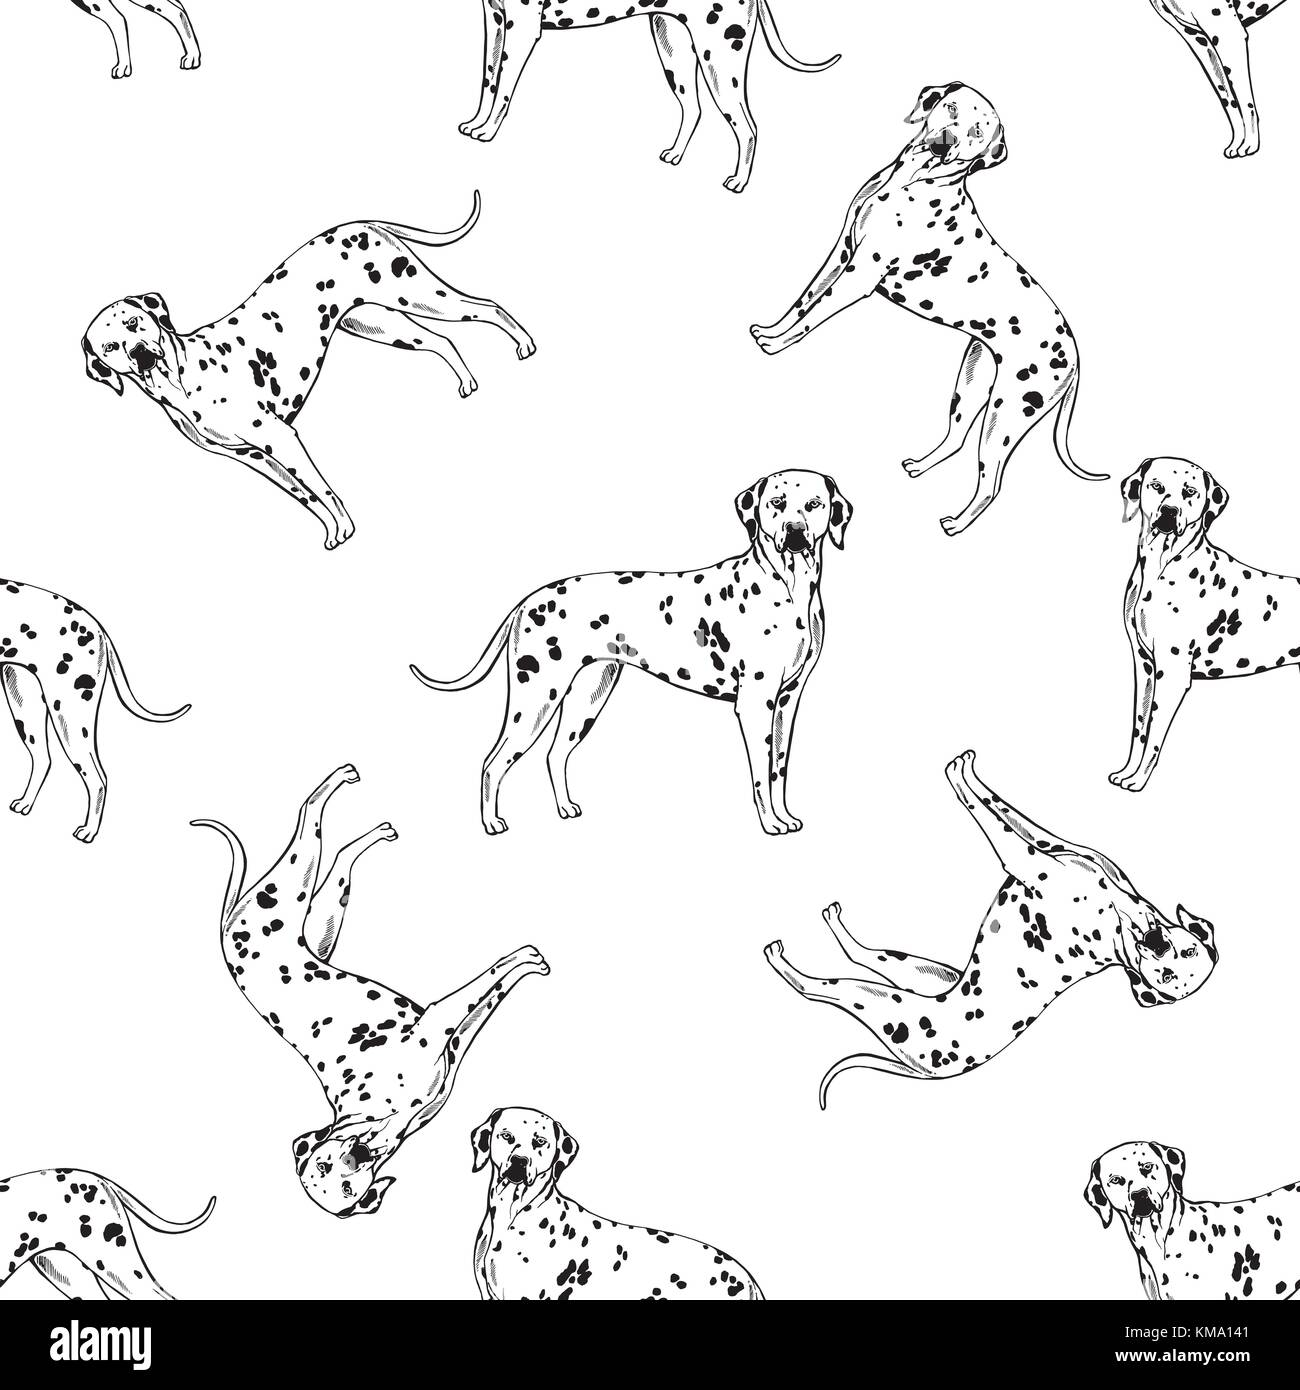 Seamless pattern of hand drawn sketch style dalmatian. Vector illustration isolated on white background. - Stock Vector